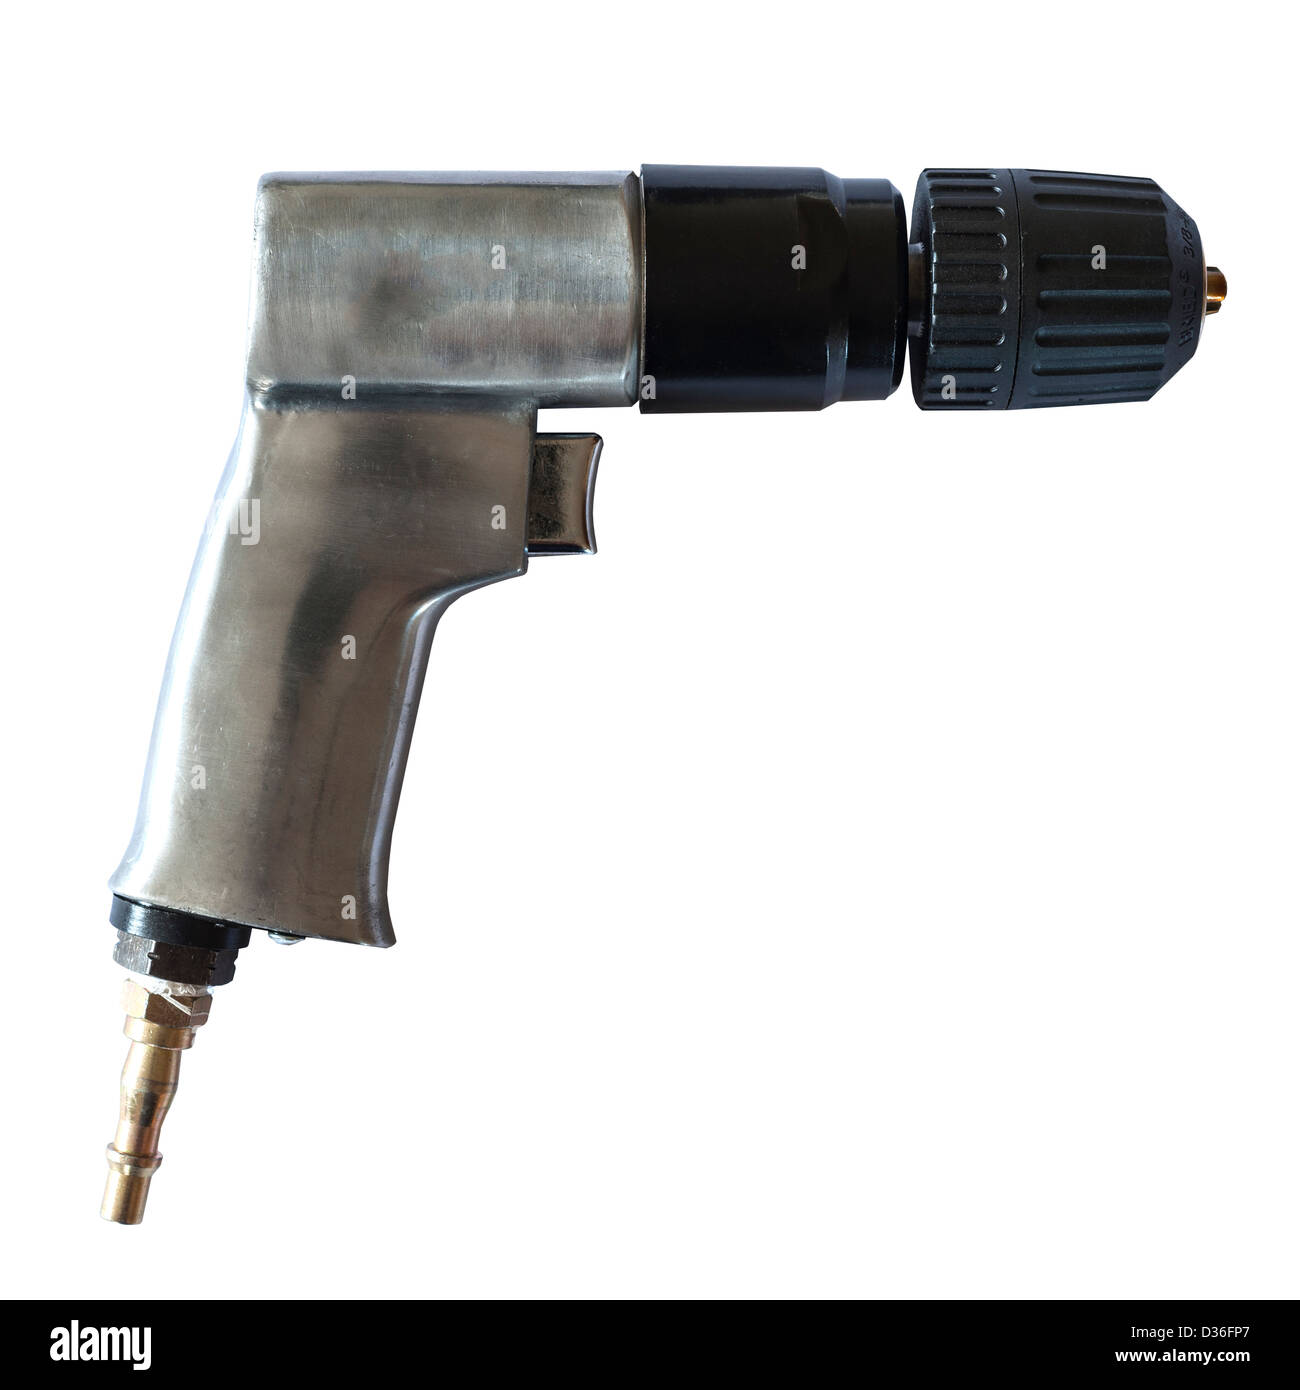 A keyless chuck drill tool for use with an air compressor on a white background - Stock Image